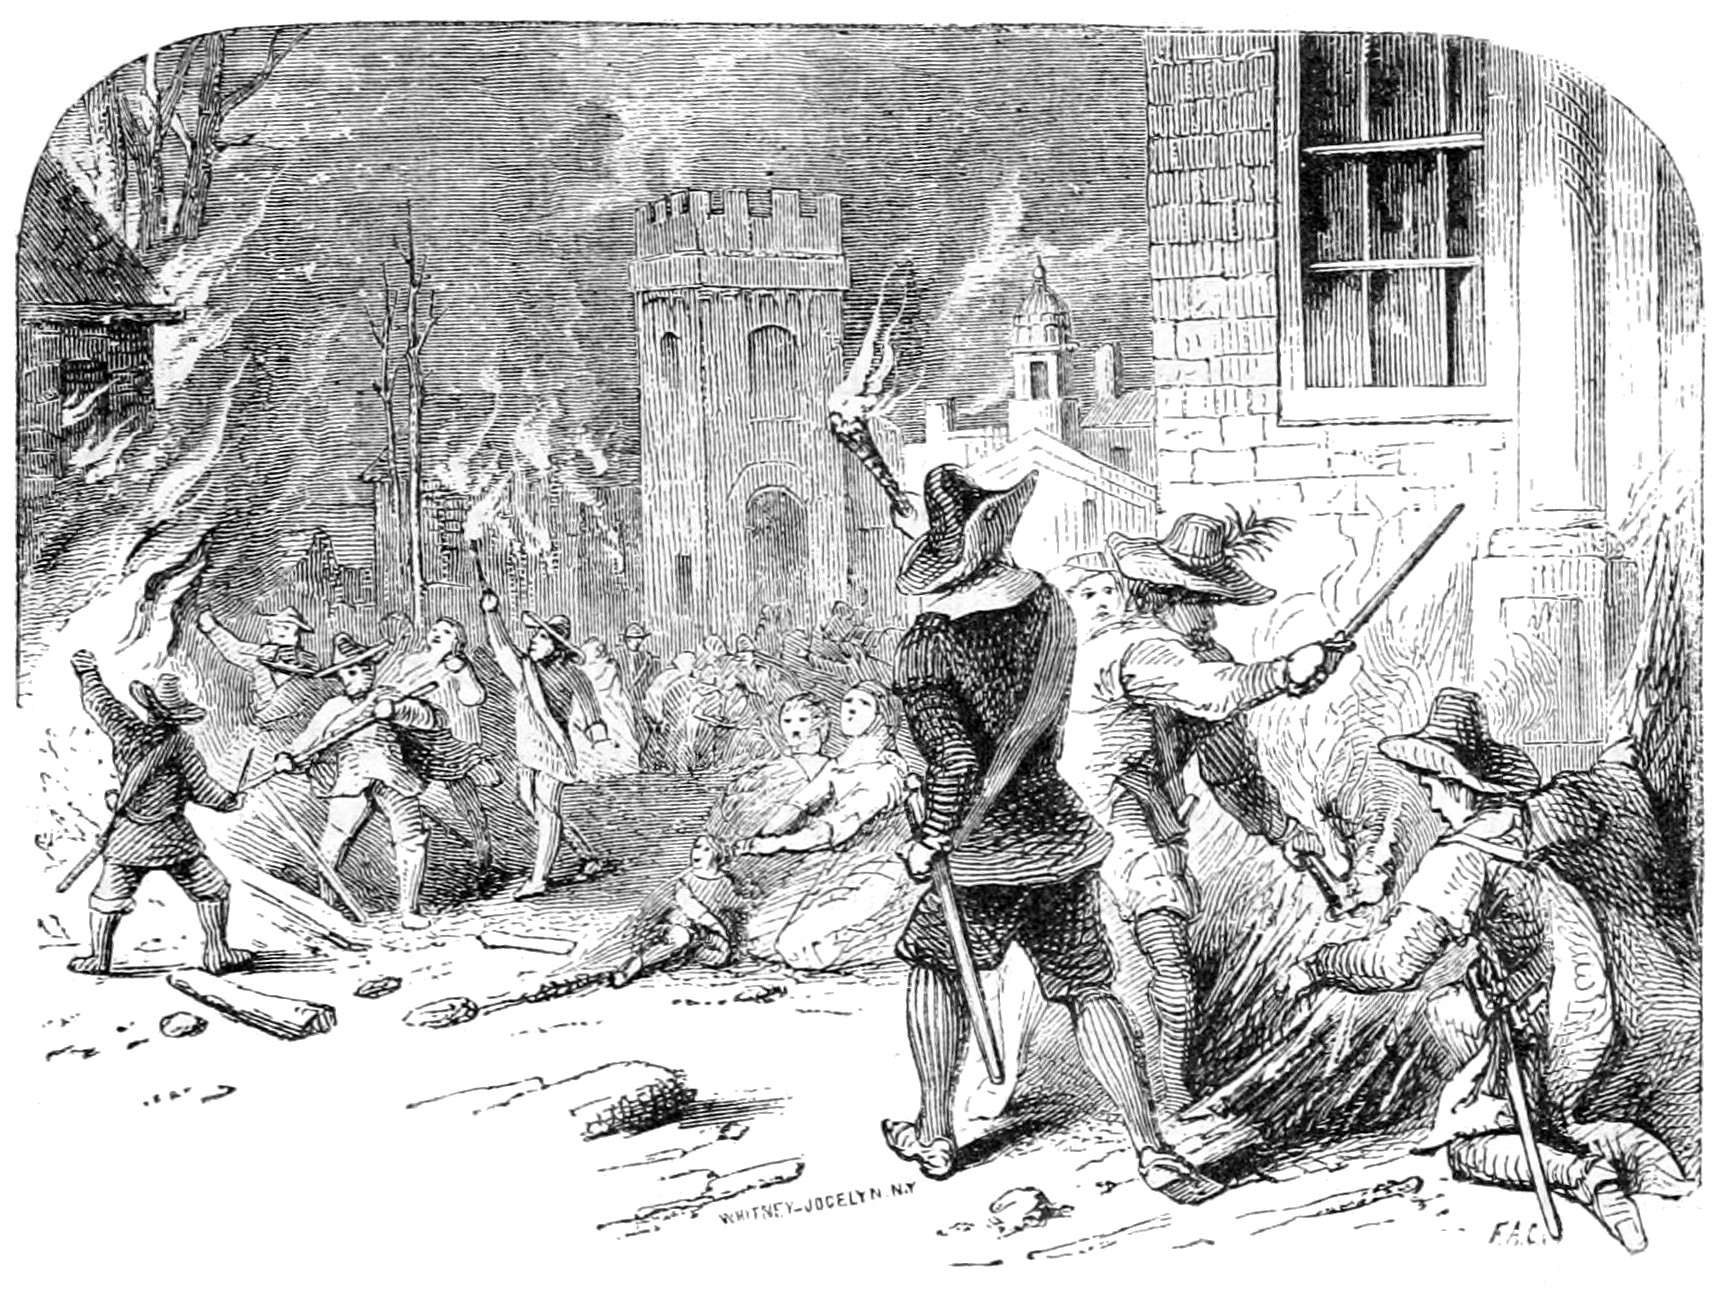 Burning of Jamestown during Bacon's Rebellion (1676)